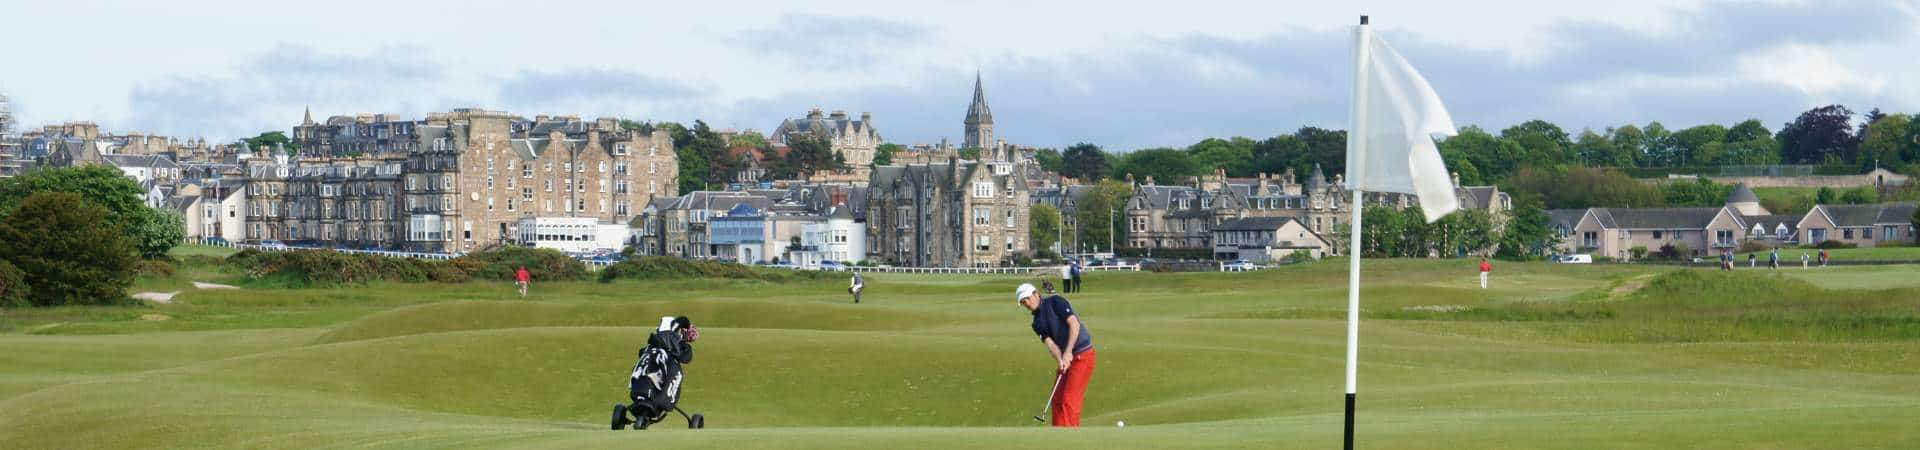 A successful St Andrews Old Course Ballot - Ginger Beer Golf client